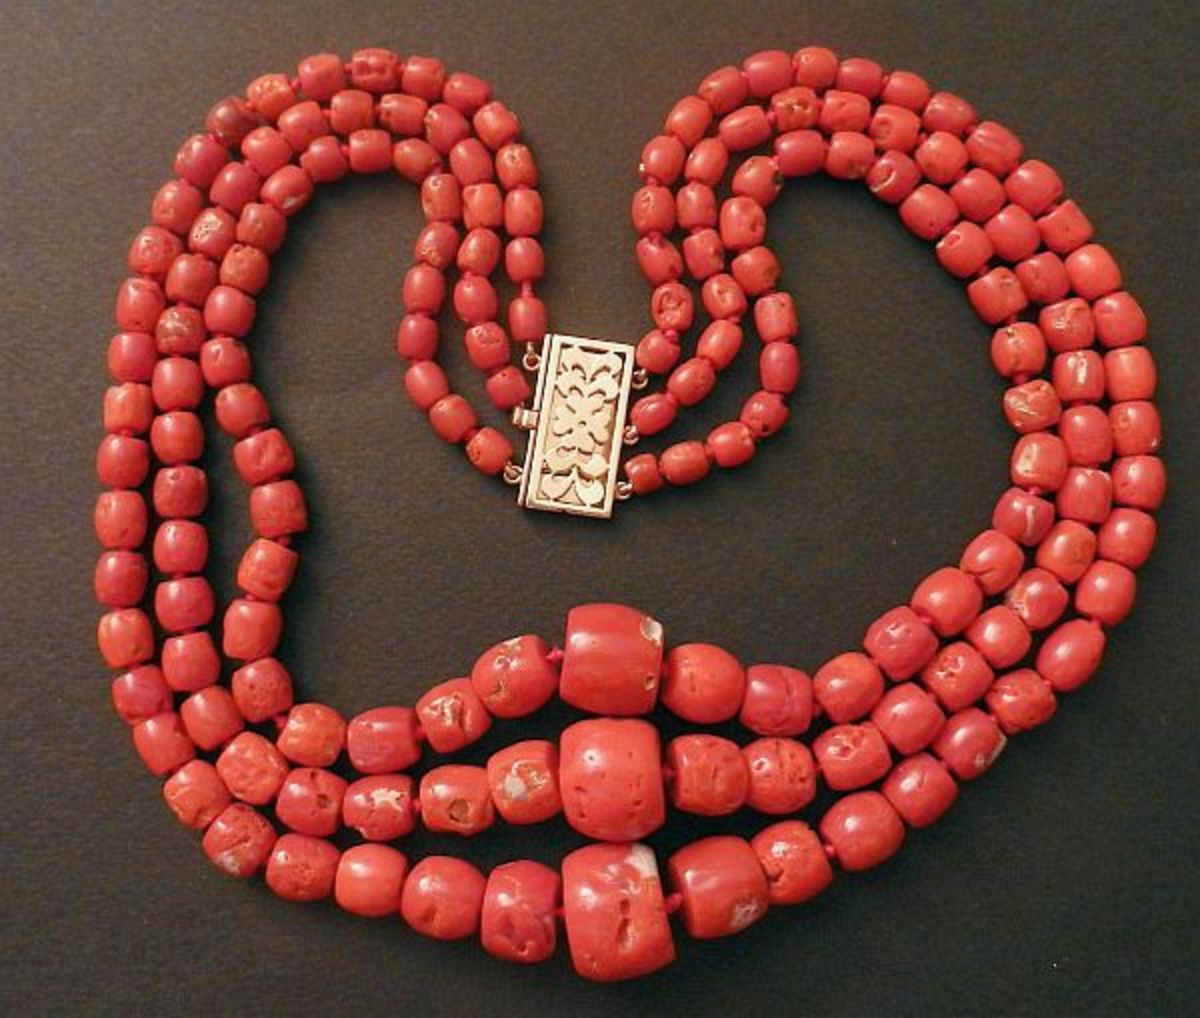 Coral beads.